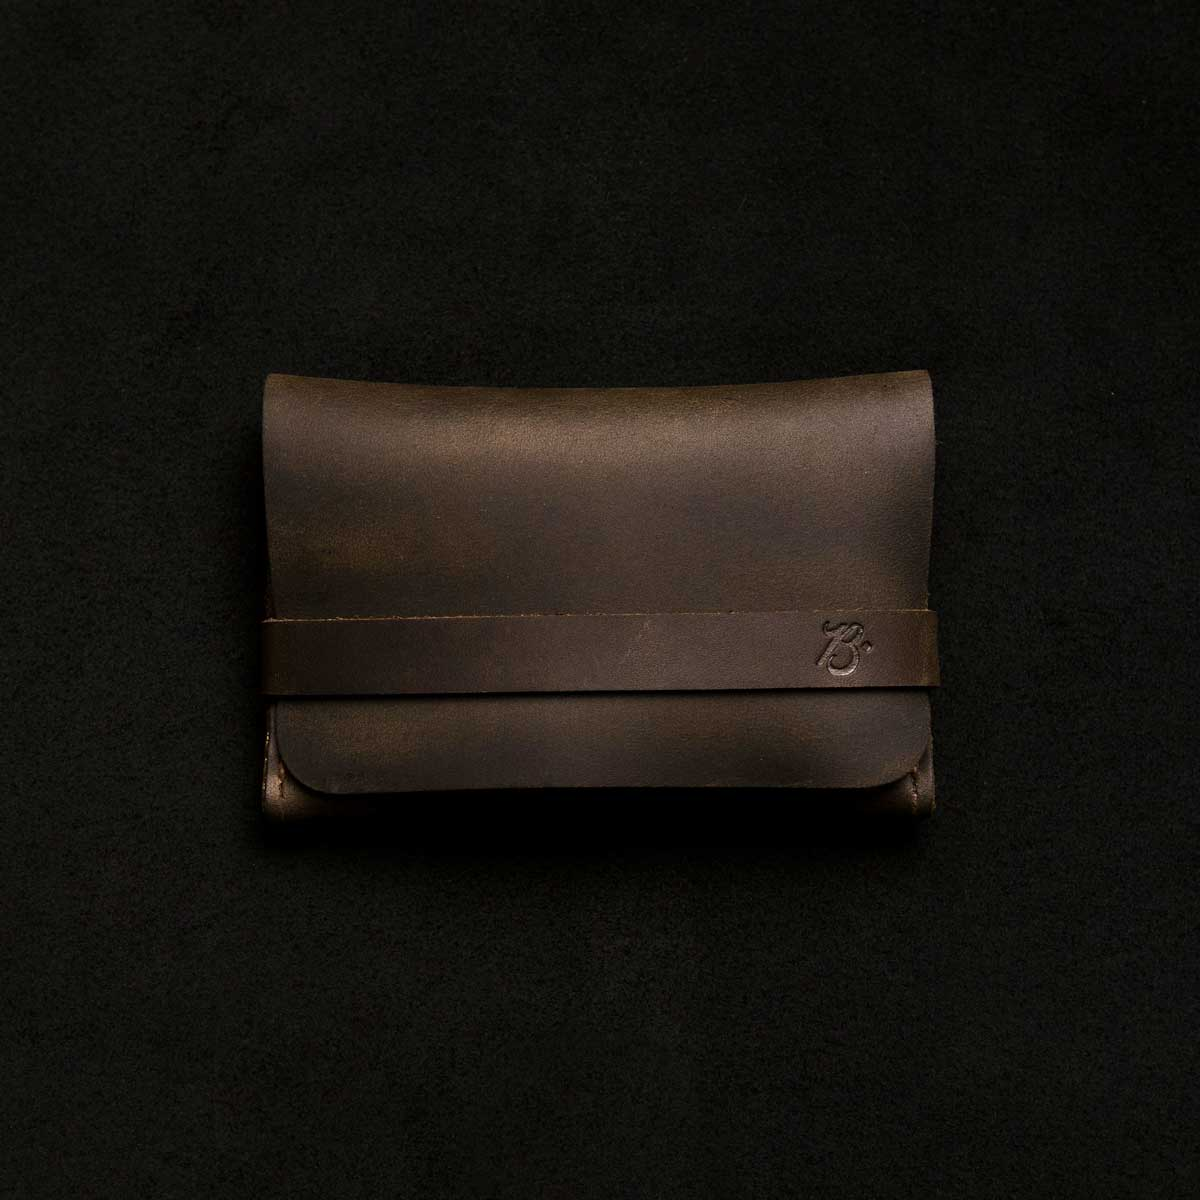 + Carteira Single Pocket OLD INDIAN - BRAVEMAN LEATHER GOODS